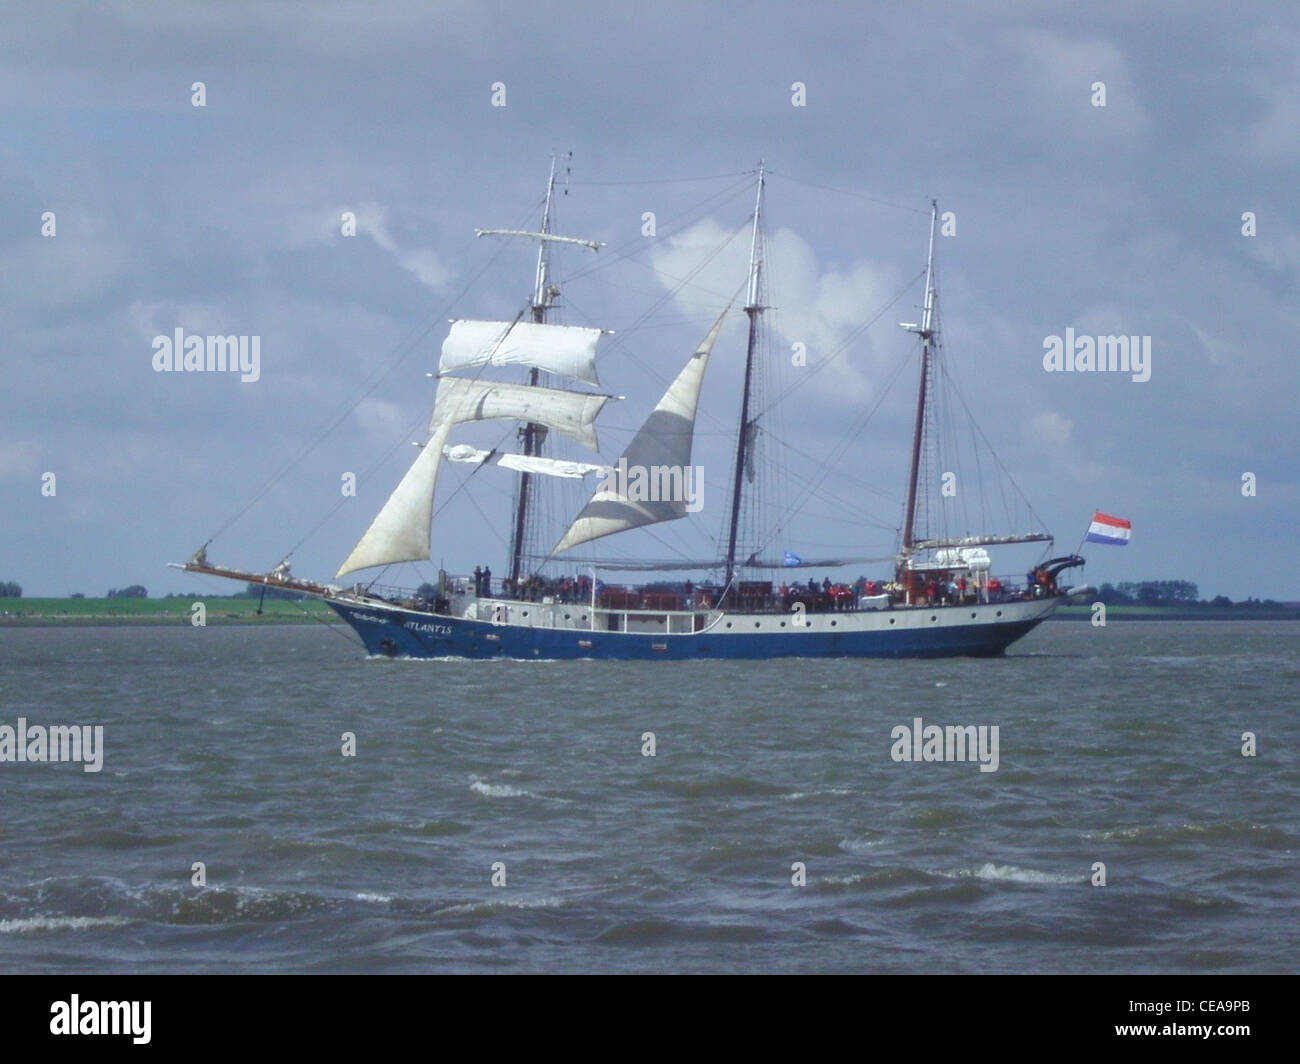 The Dutch sailing ship Atlantis in a parade on the River Weser in front of Bremerhaven - Stock Image